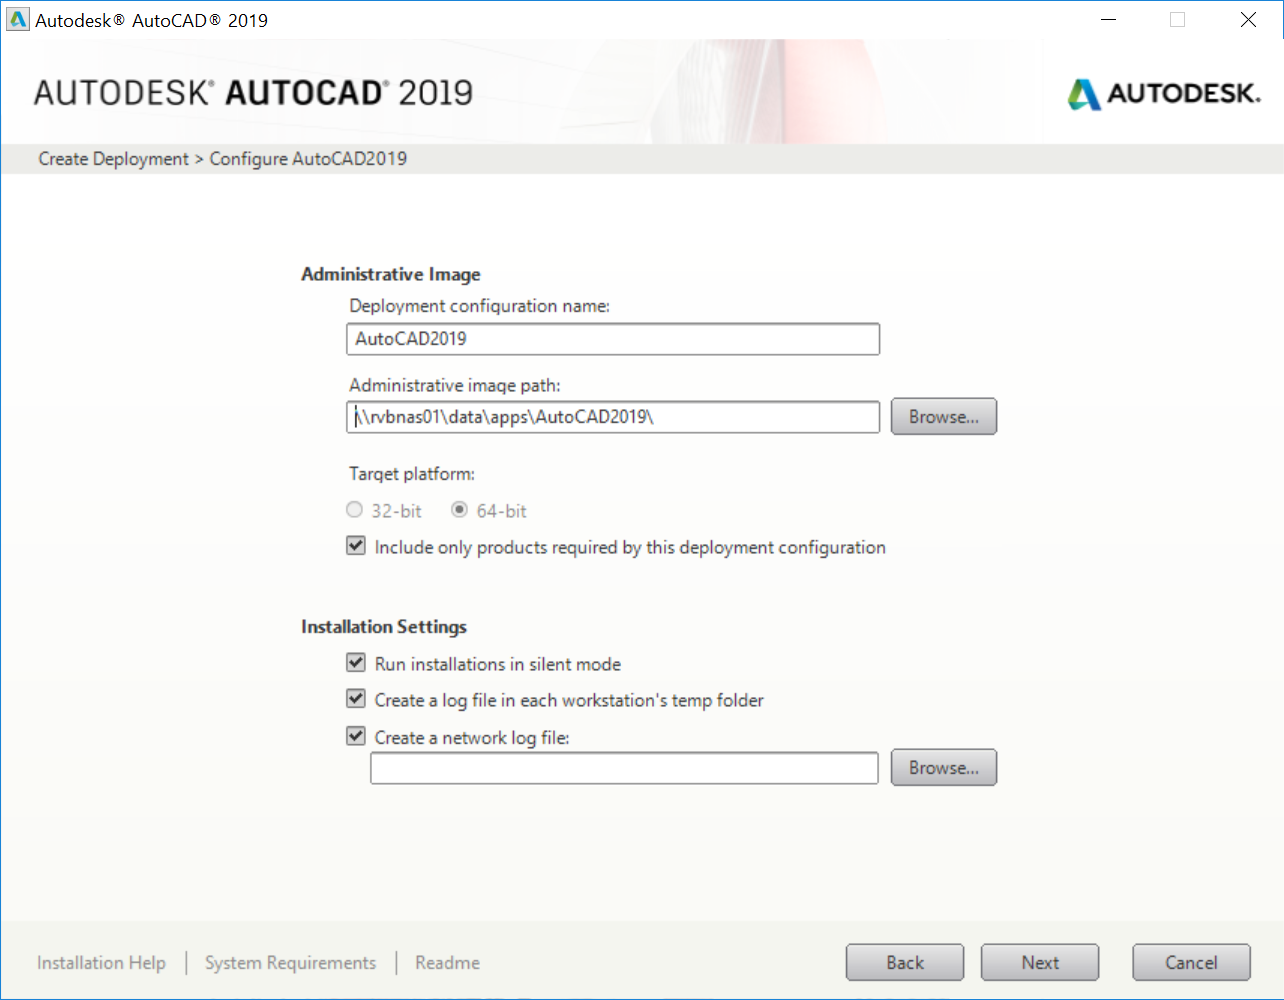 Autodesk AutoCAD 2019 - Applications